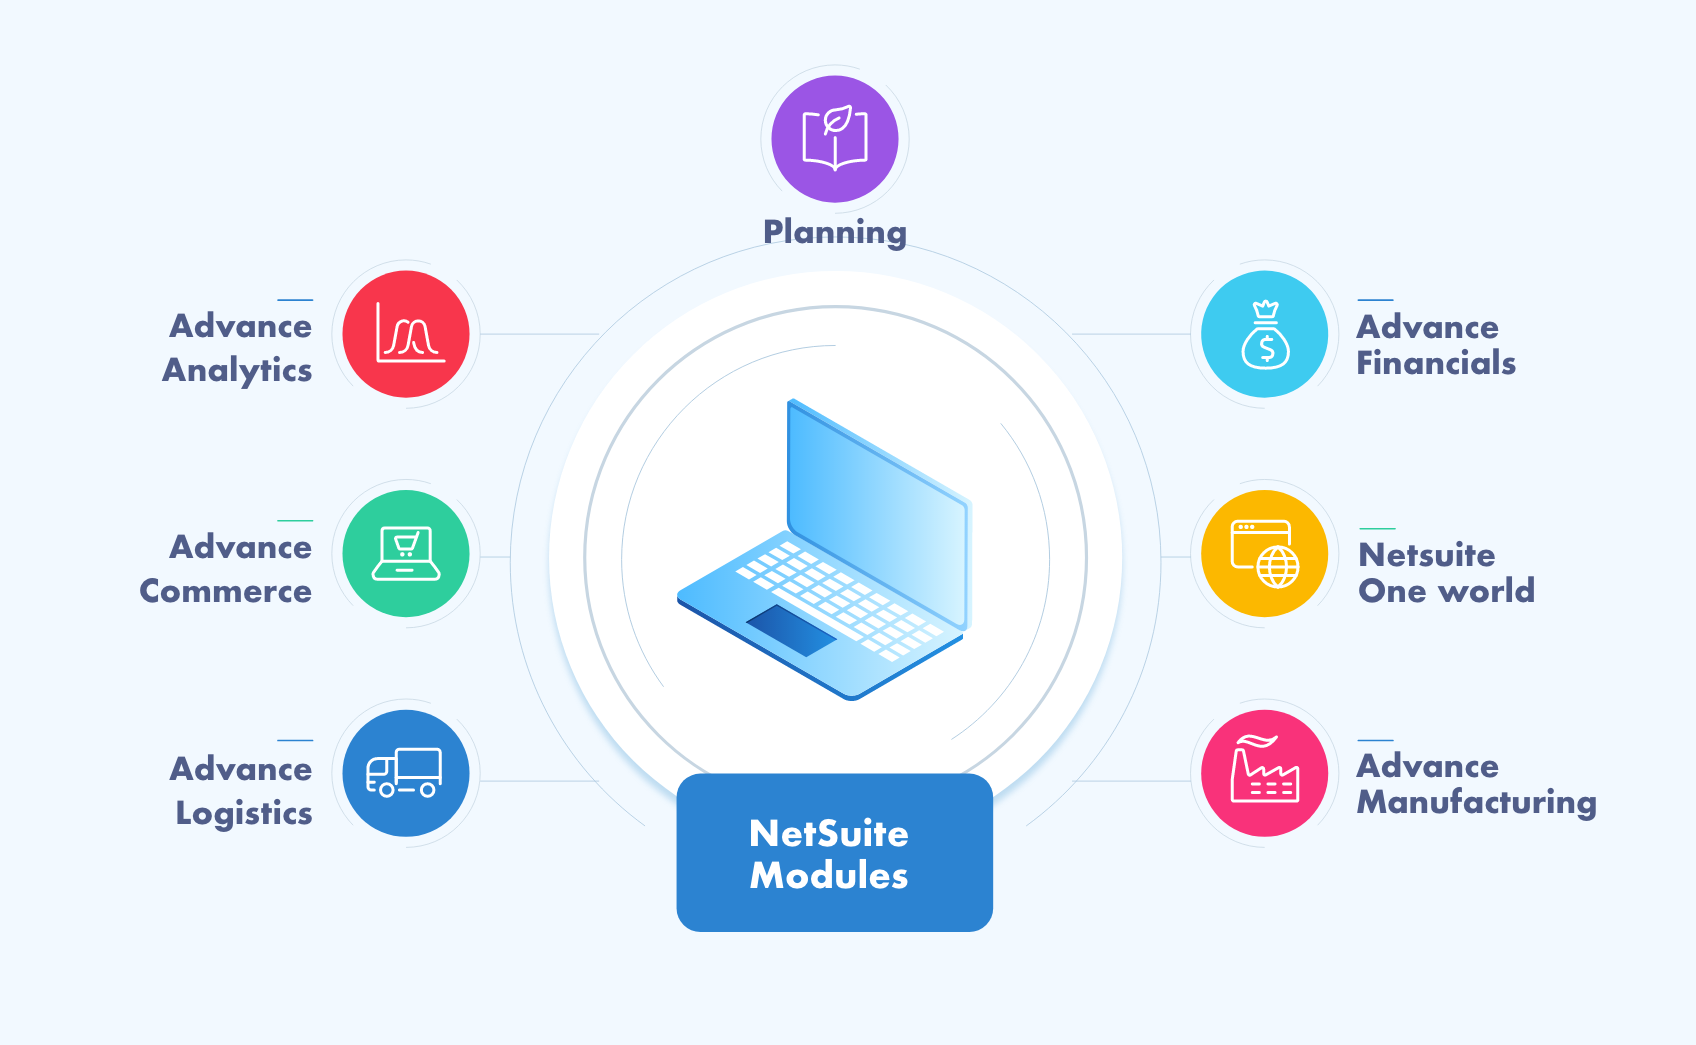 The Leading NetSuite Modules